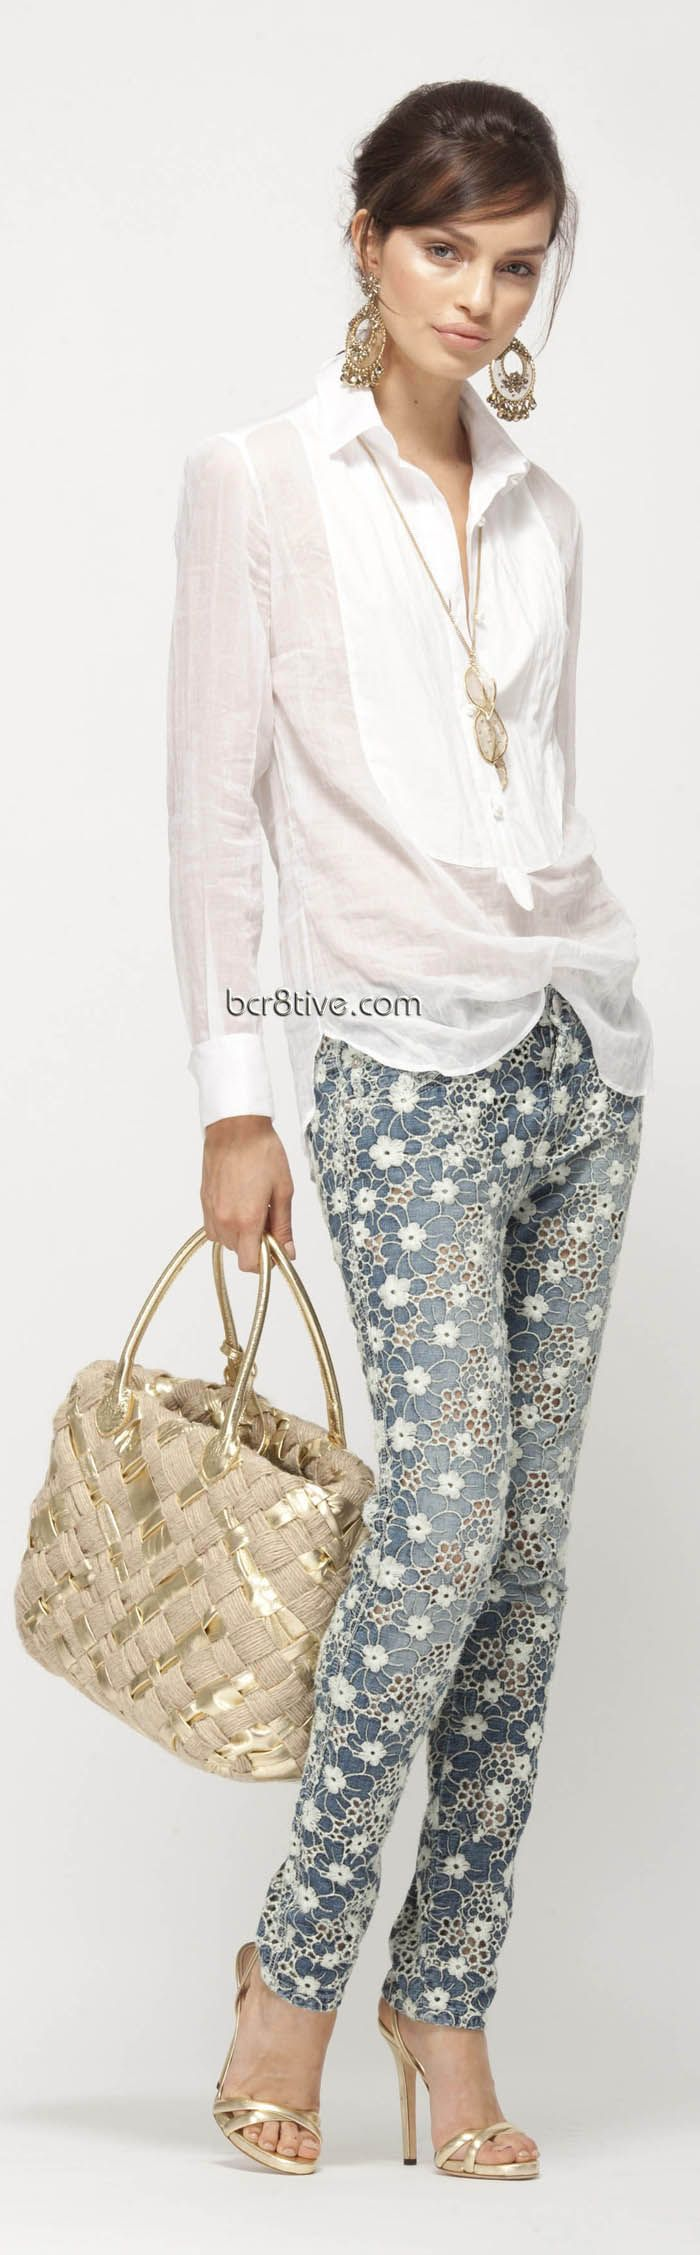 Ermanno Scervino Pre Collection 2013 - Love these jeans & are available to buy.